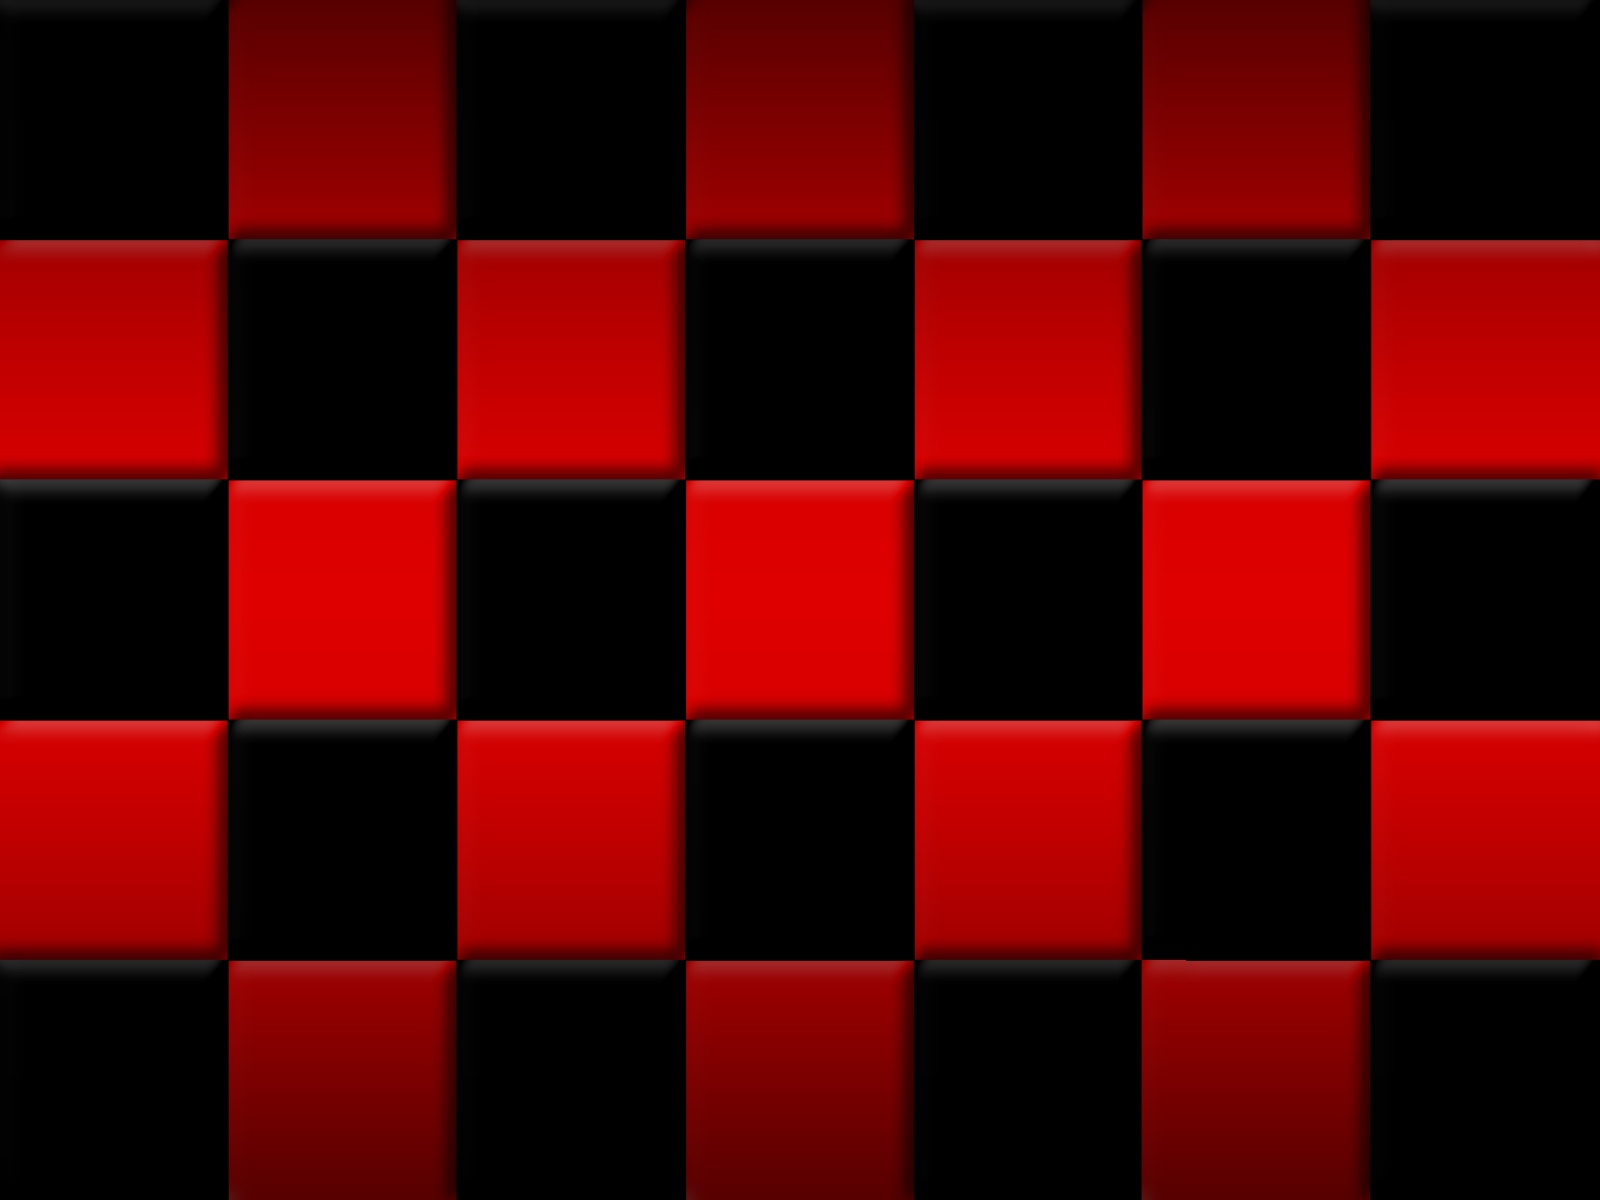 Red White And Black Backgrounds 19 Wide Wallpaper Black And Red